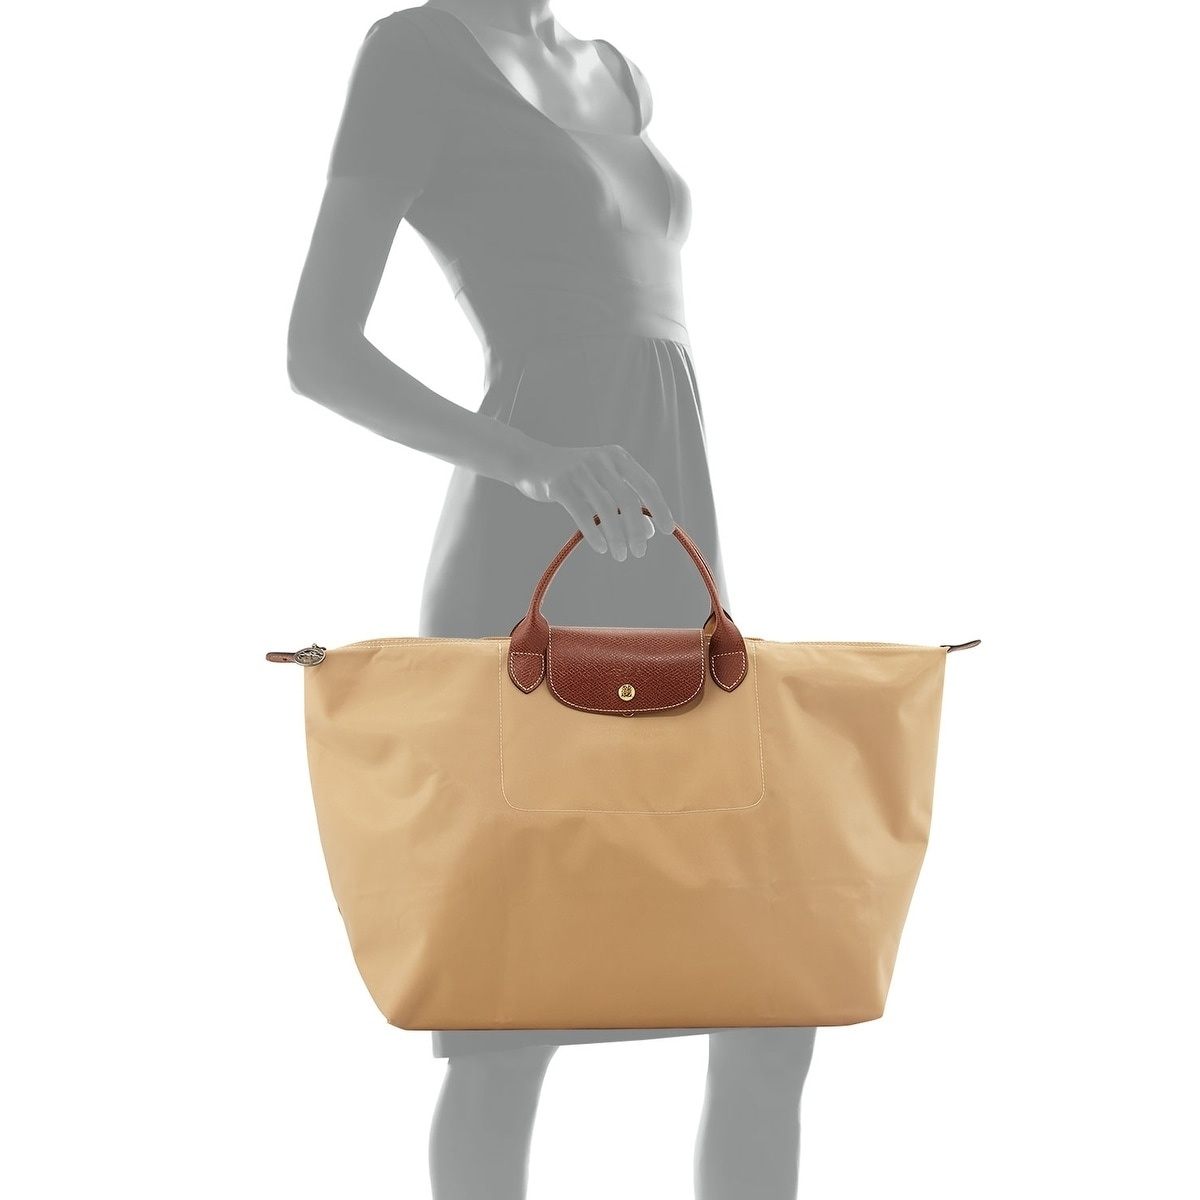 aef9a64cff5f Shop Longchamp Le Pliage Large Travel Bag-Beige - Free Shipping Today -  Overstock - 18058419